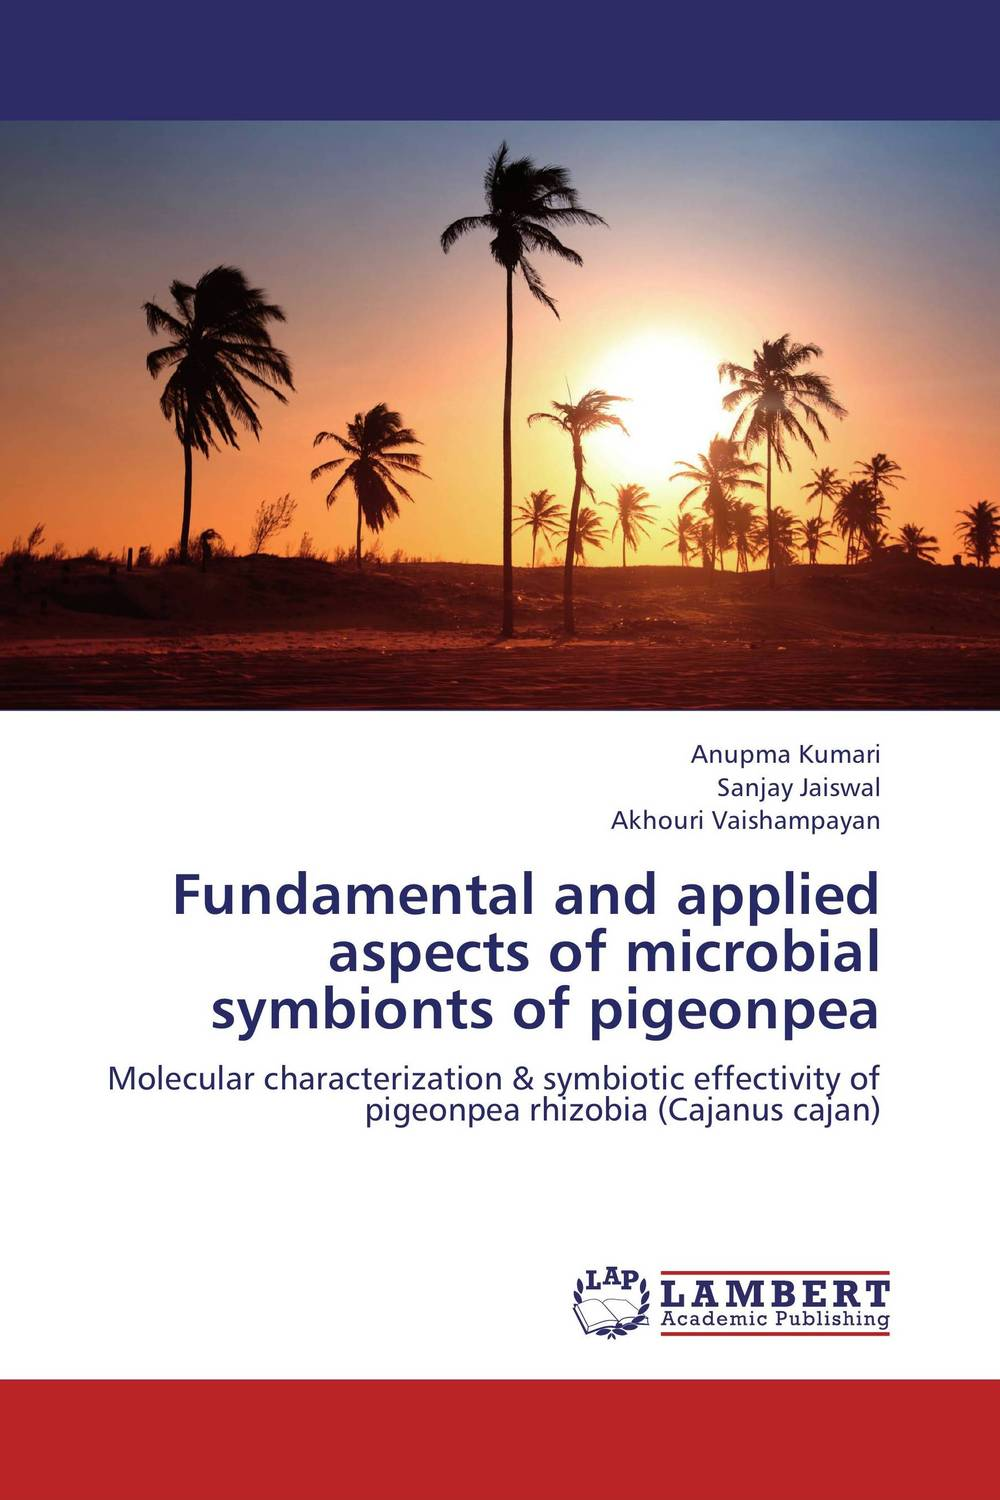 Fundamental and applied aspects of microbial symbionts of pigeonpea сборник статей science fundamental and applied proceedings of materials the international scientific conference czech republic karlovy vary – russia moscow 27 28 november 2015